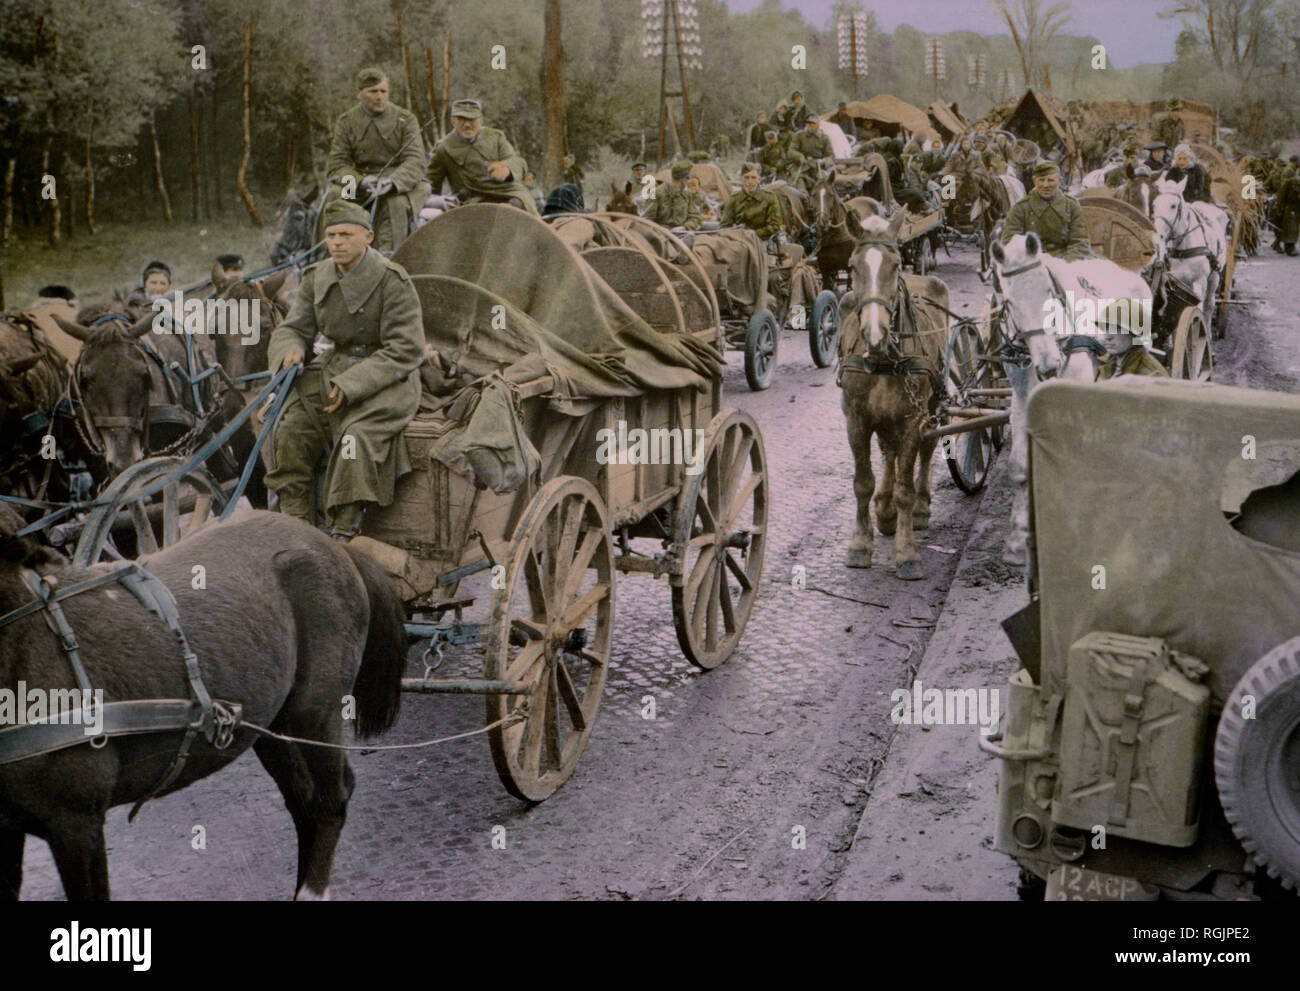 German Soldiers Riding in Carts and Wagons, Central Europe Campaign, Western Allied Invasion of Germany, 1945 Stock Photo